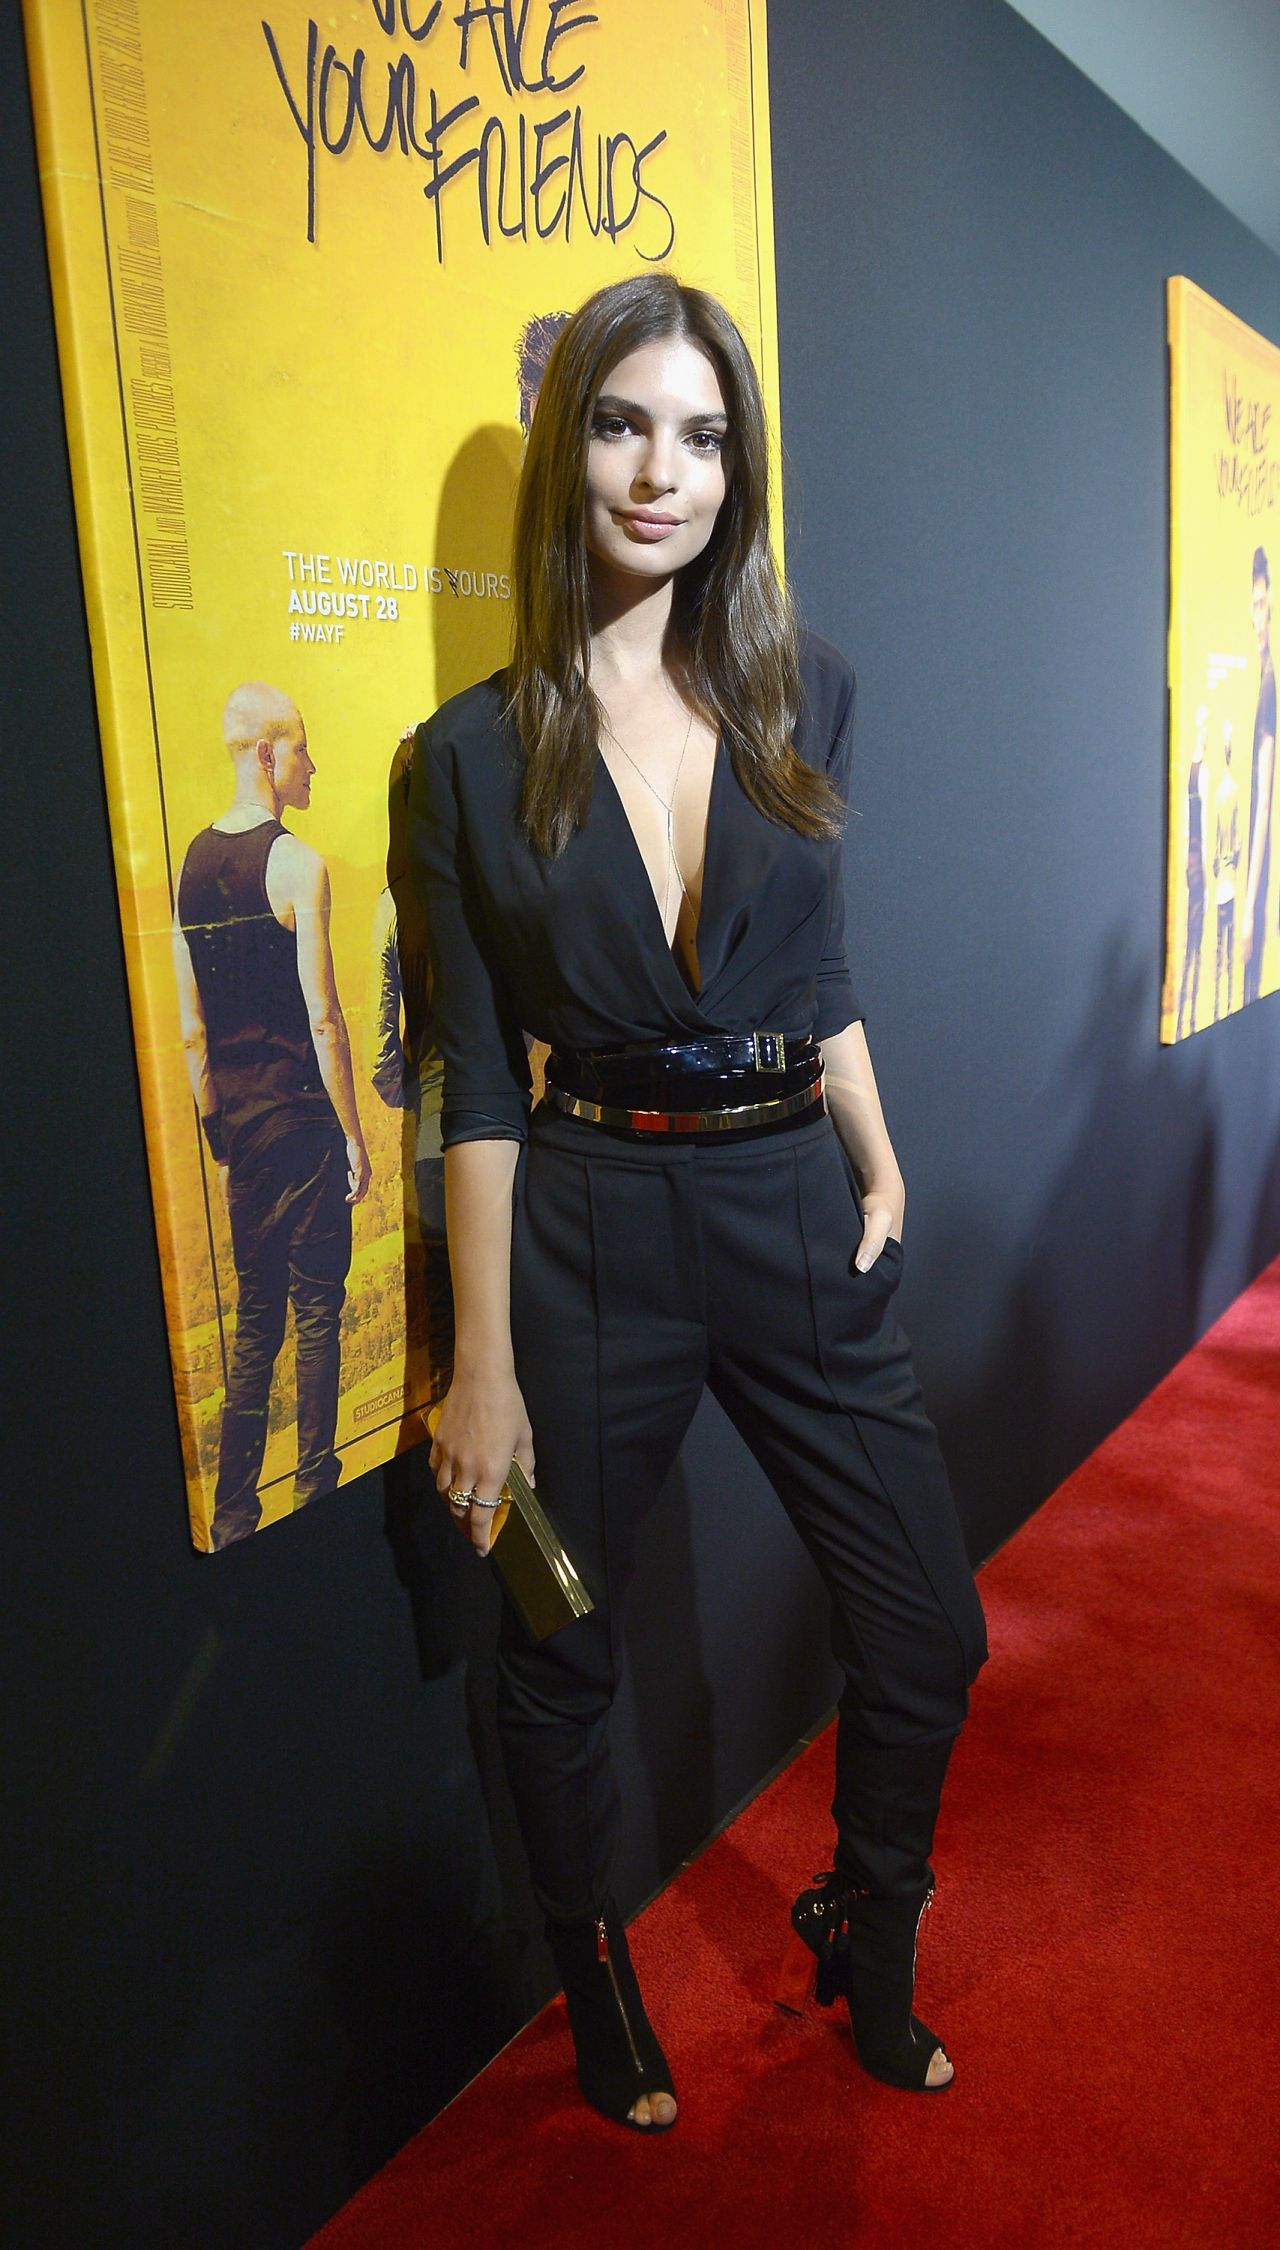 emily-ratajkowski-in-alexandre-vauthier-couture-at-the-we-are-your-friends-screening